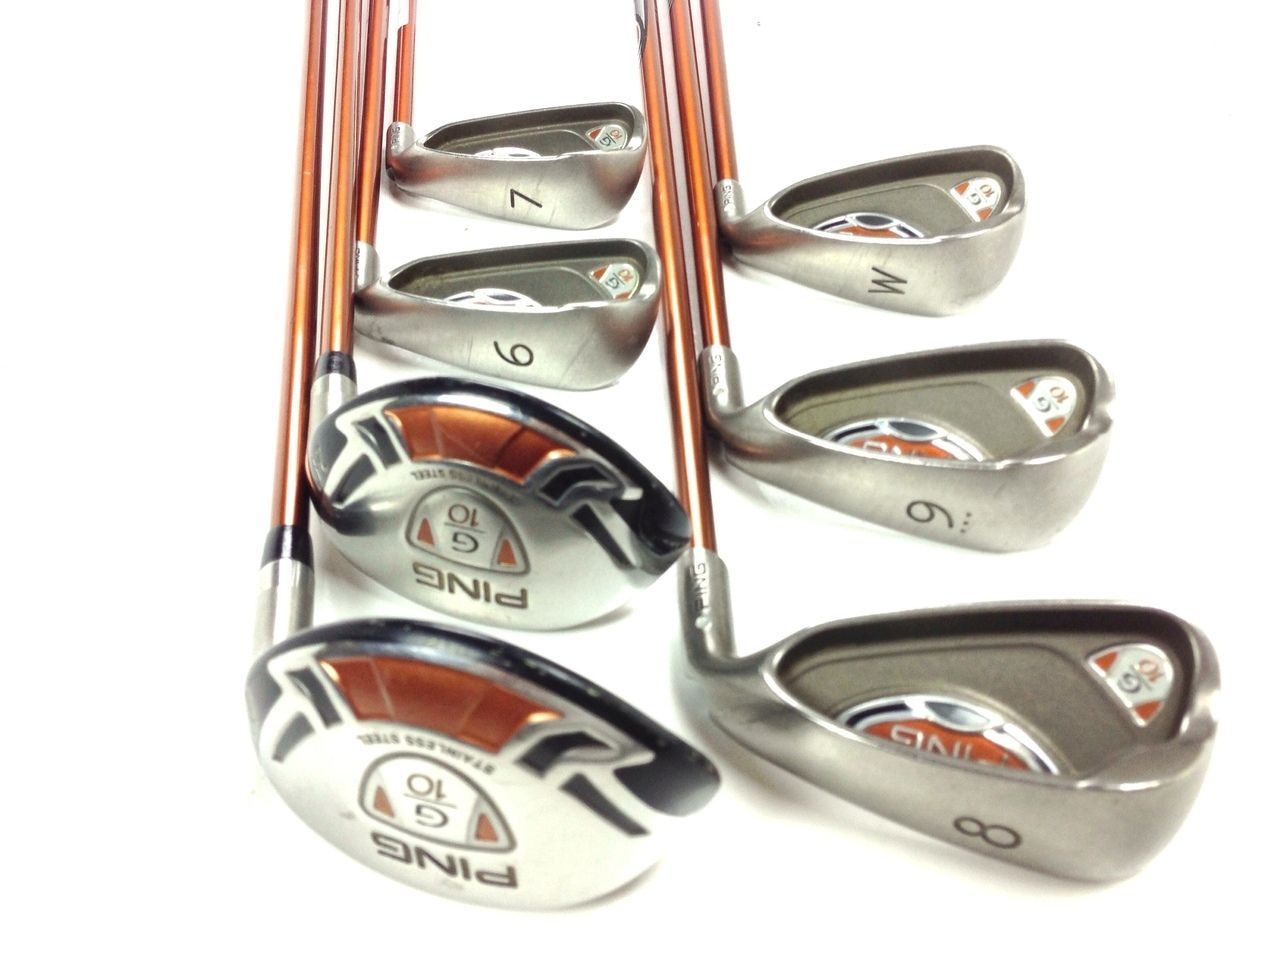 Ping G10 Combo Iron Set 4h 5h 6 Pw 7pc Silver Dot Regular Graphite Golf Clubs 239 99 Nice G10 Combo Irons Faces Have Scratches Ironing Set Golf Clubs Golf